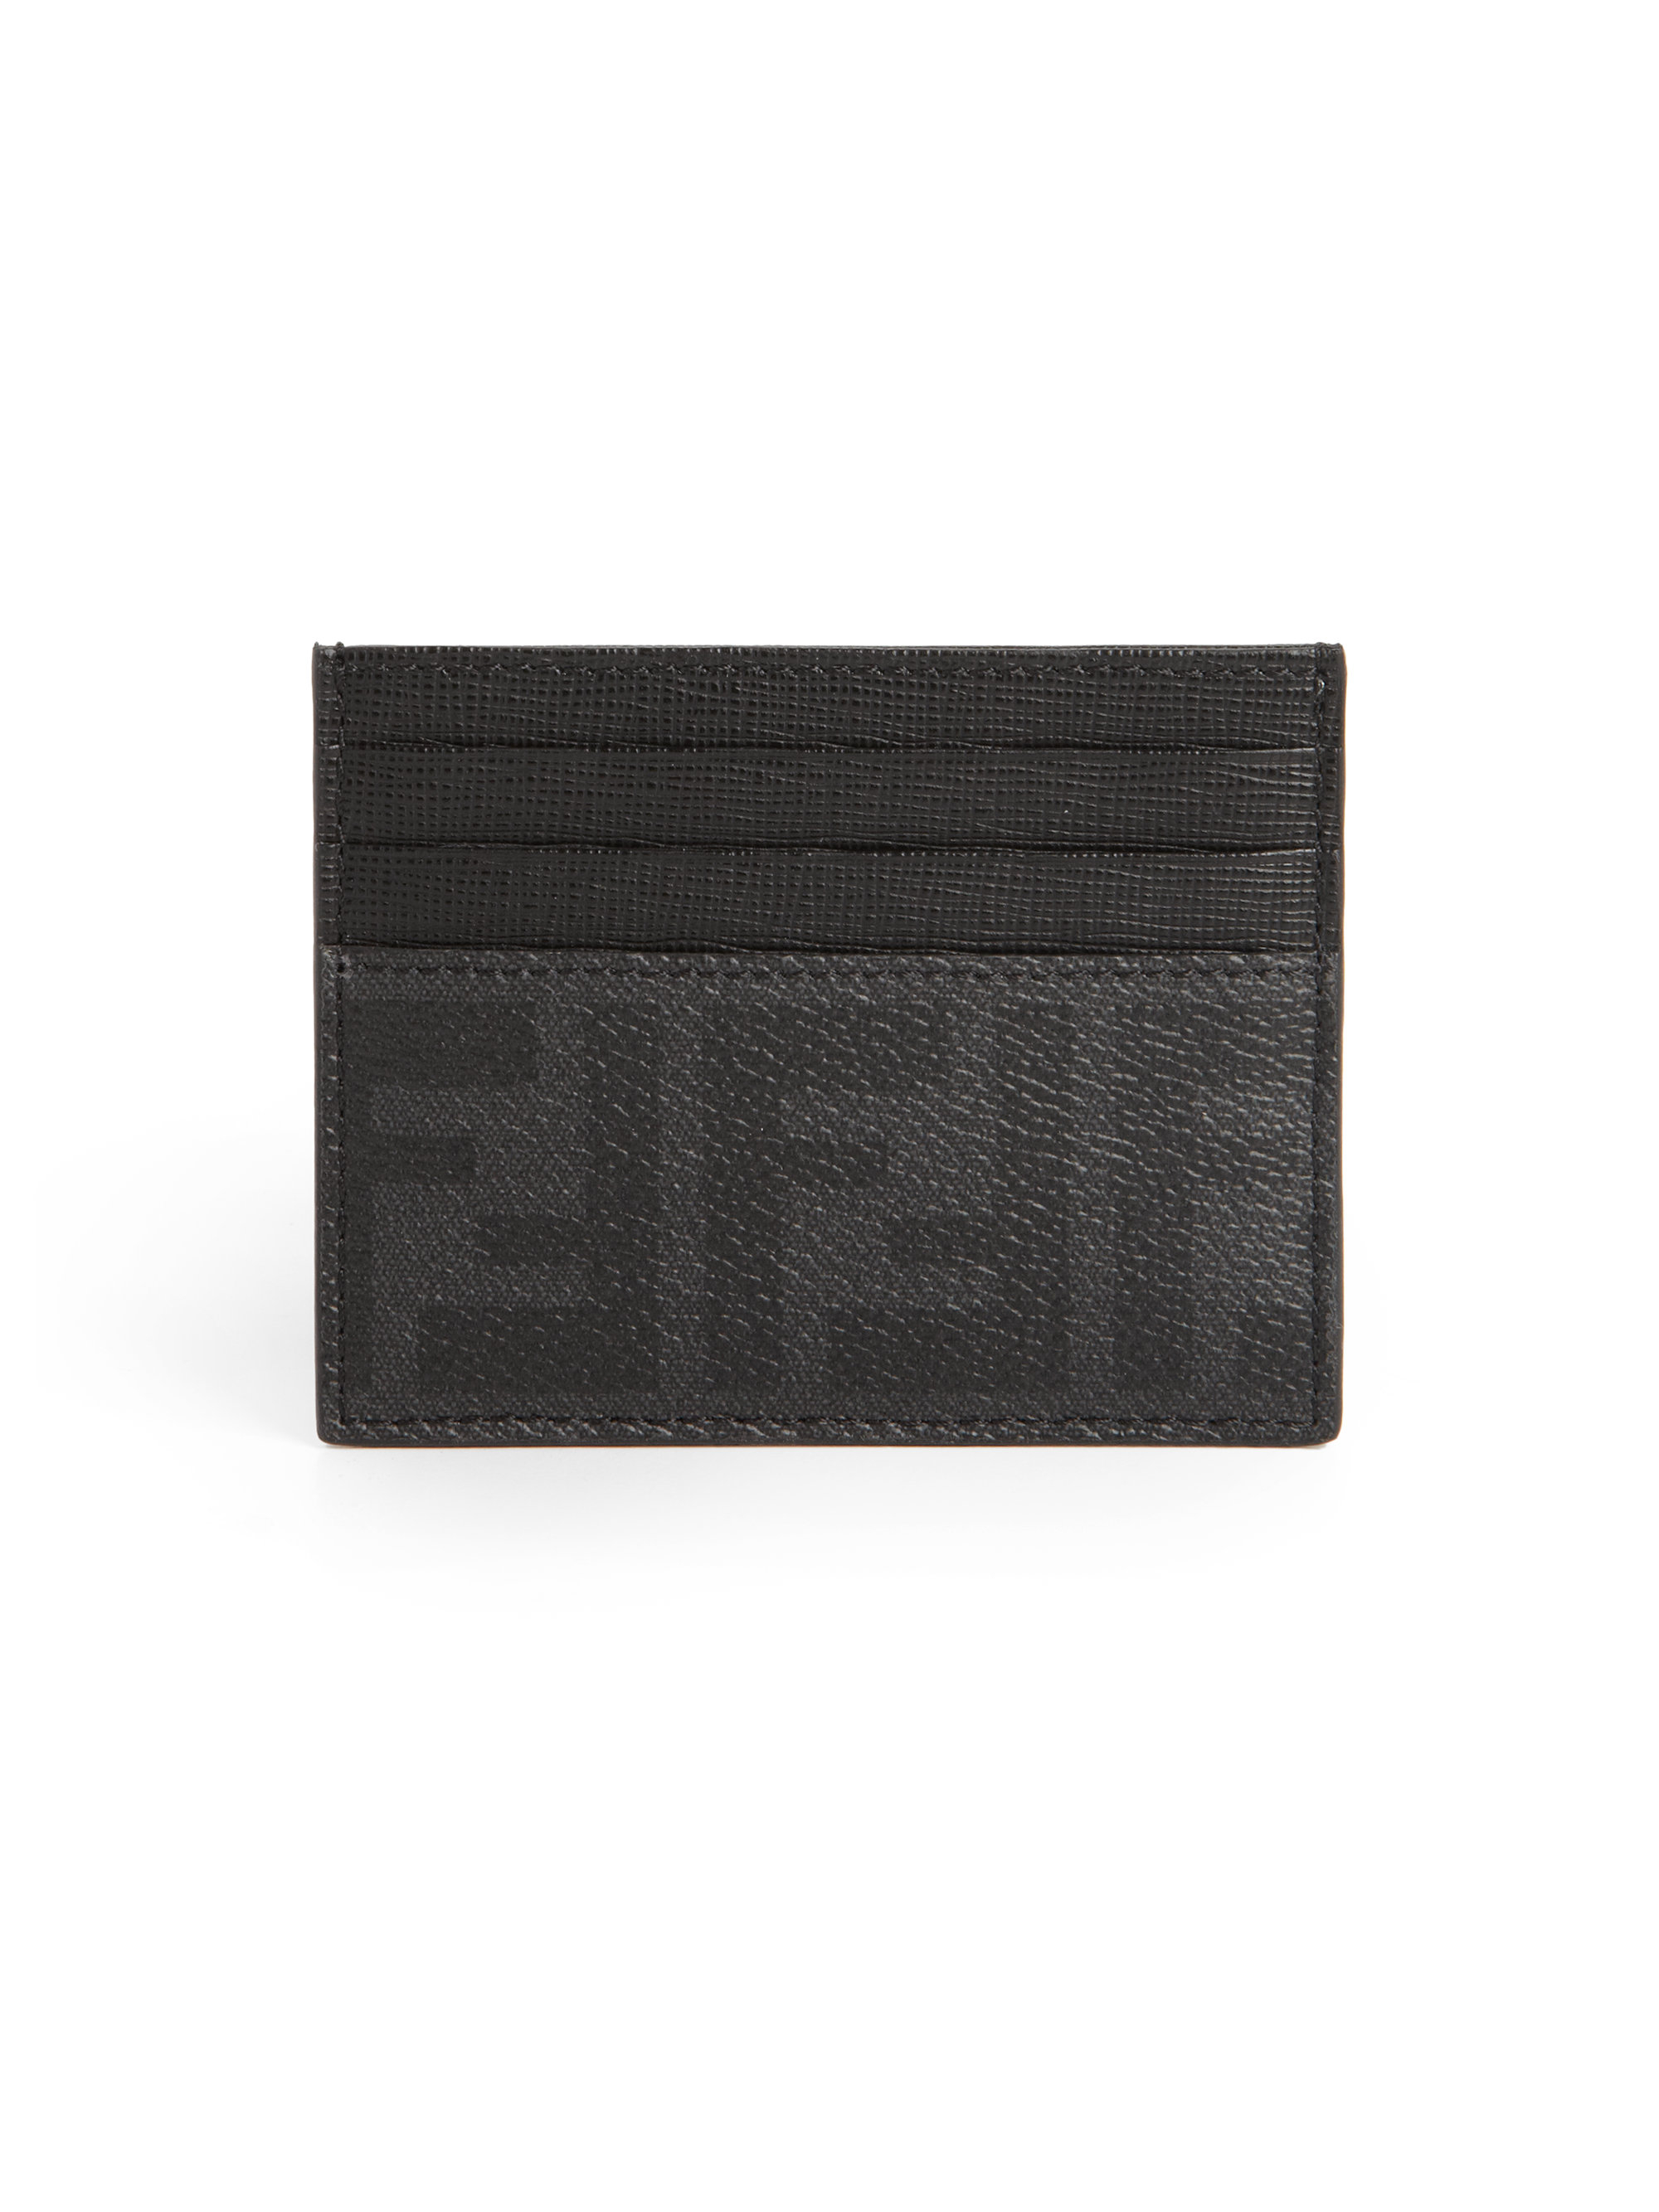 Black card holder Fendi Collections Sale Online Low Price Cheap Sale Supply WslzLkgd